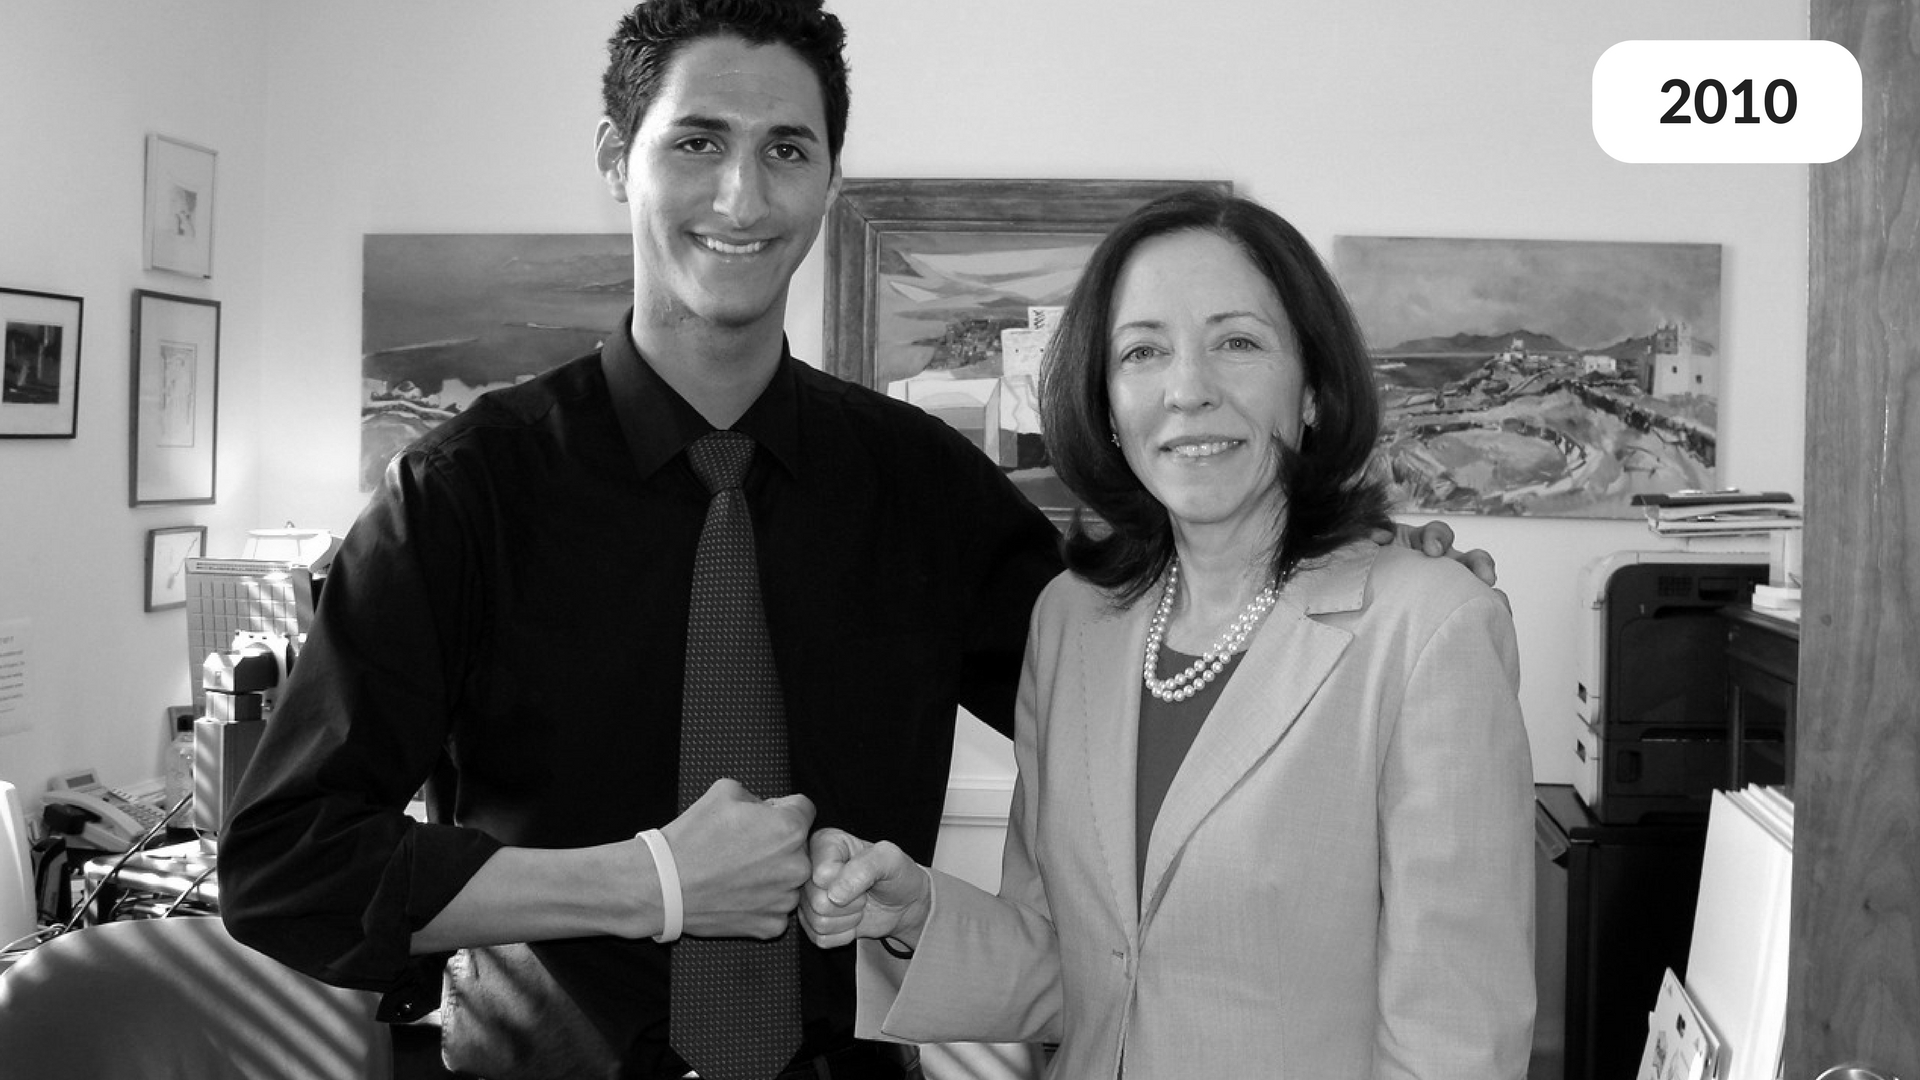 alonso chehade with senator maria cantwell in 2010.jpg